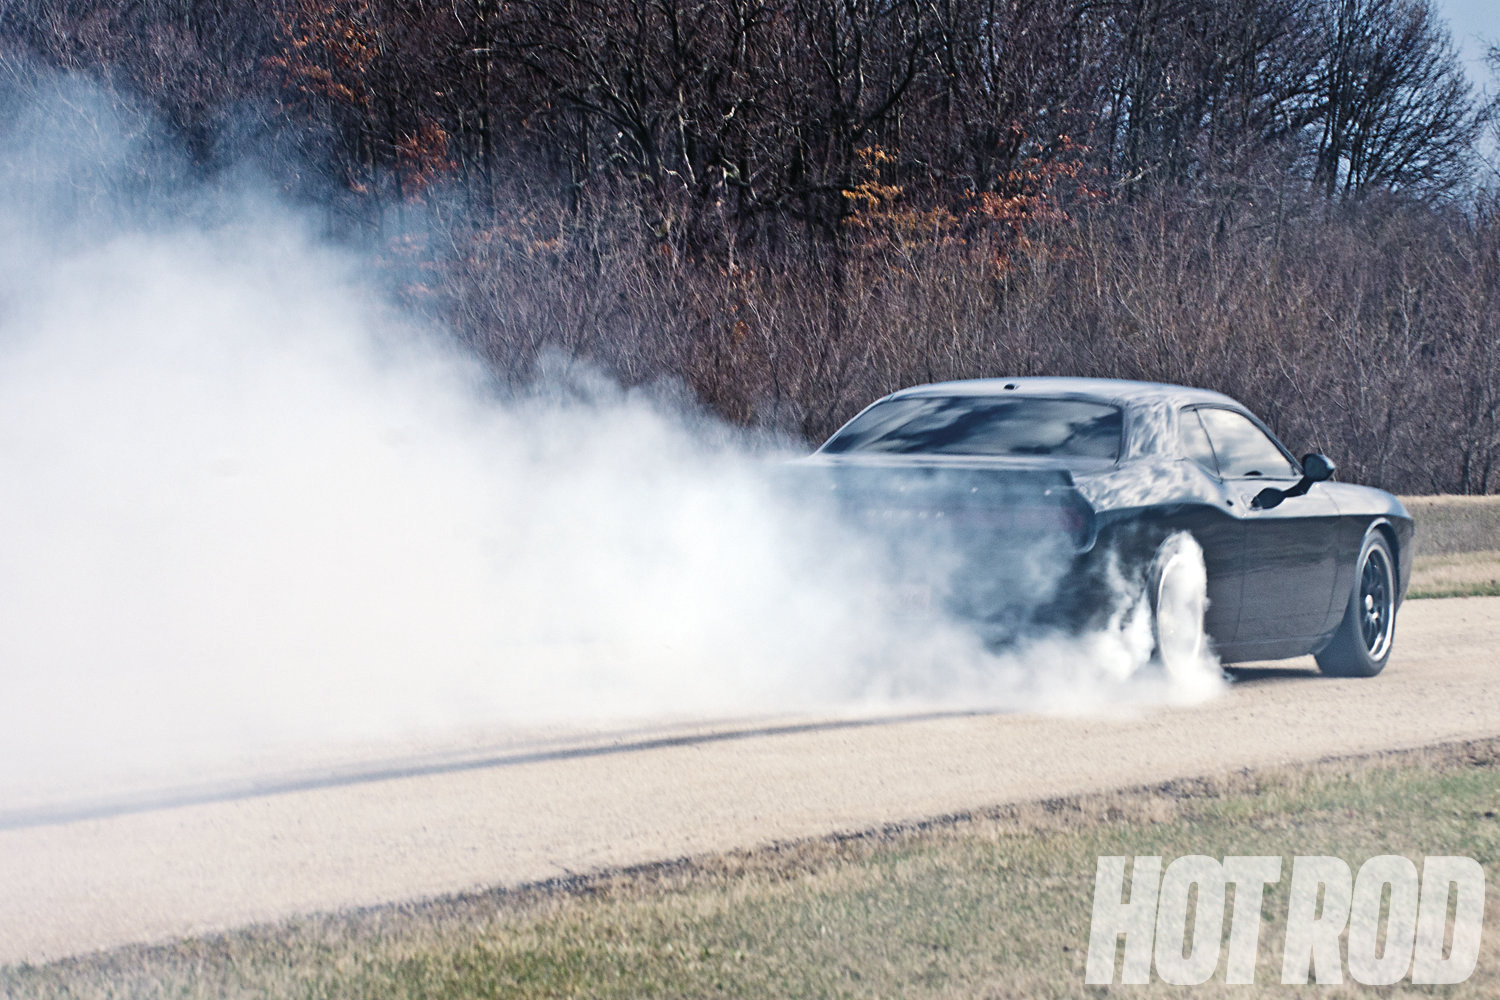 With Dana 60 gears and subtle rear suspension tweaks, tire smoking is no longer hazardous to the Challenger's health.